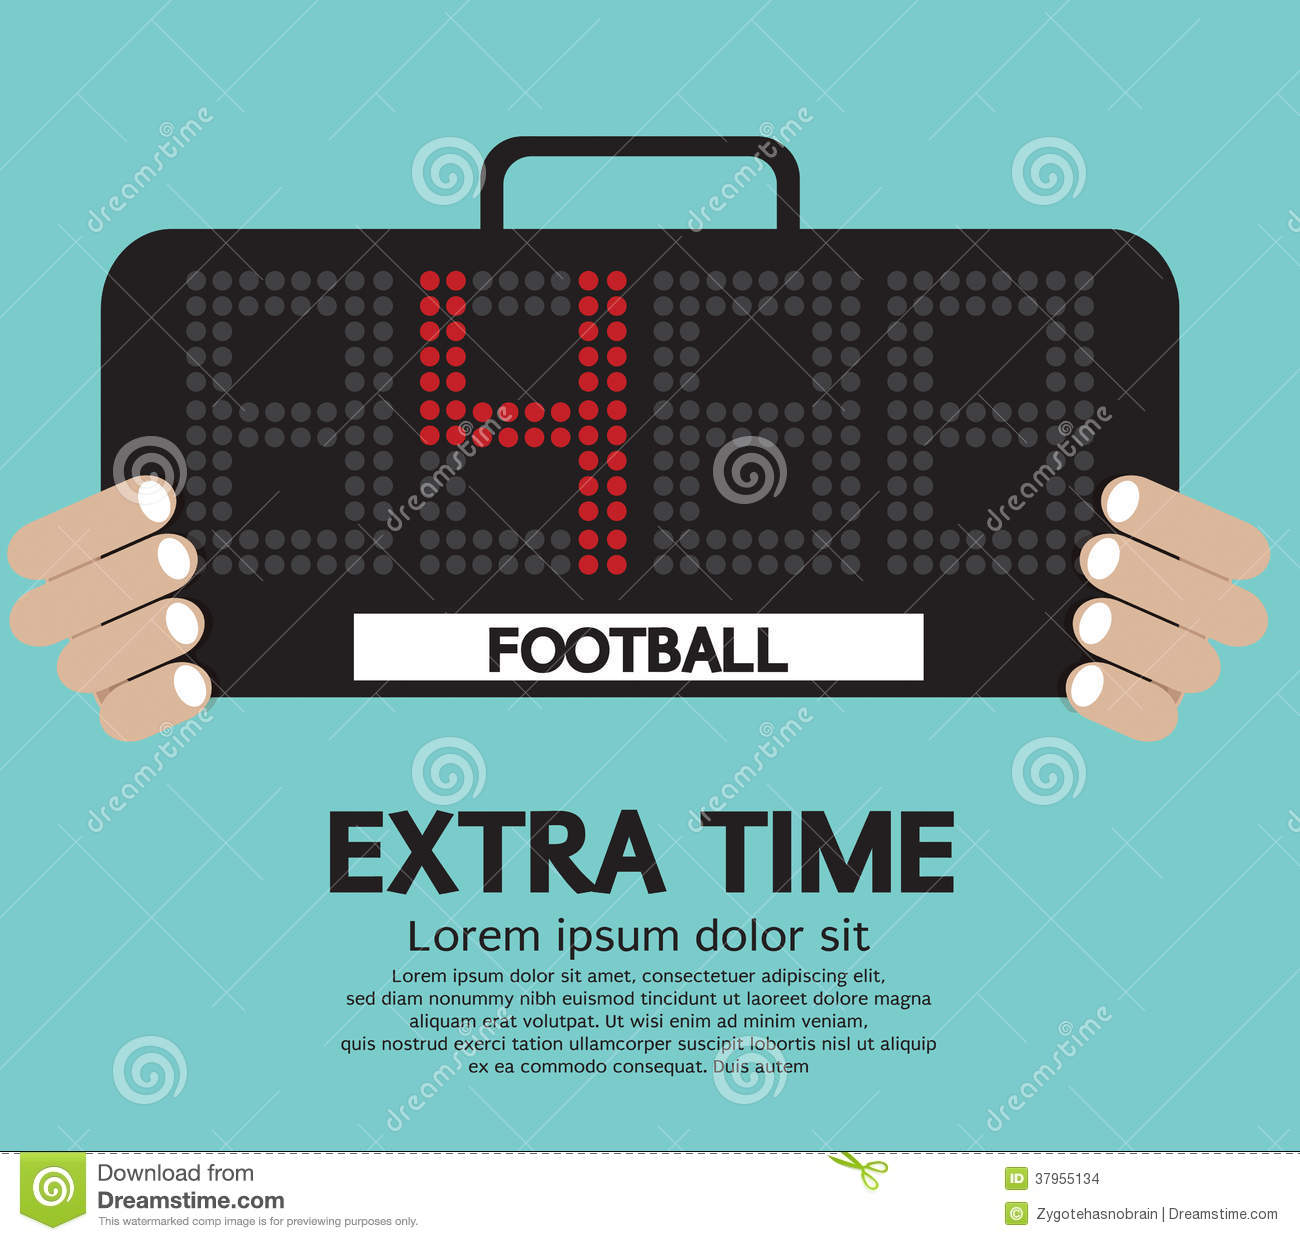 Football Extra Time.